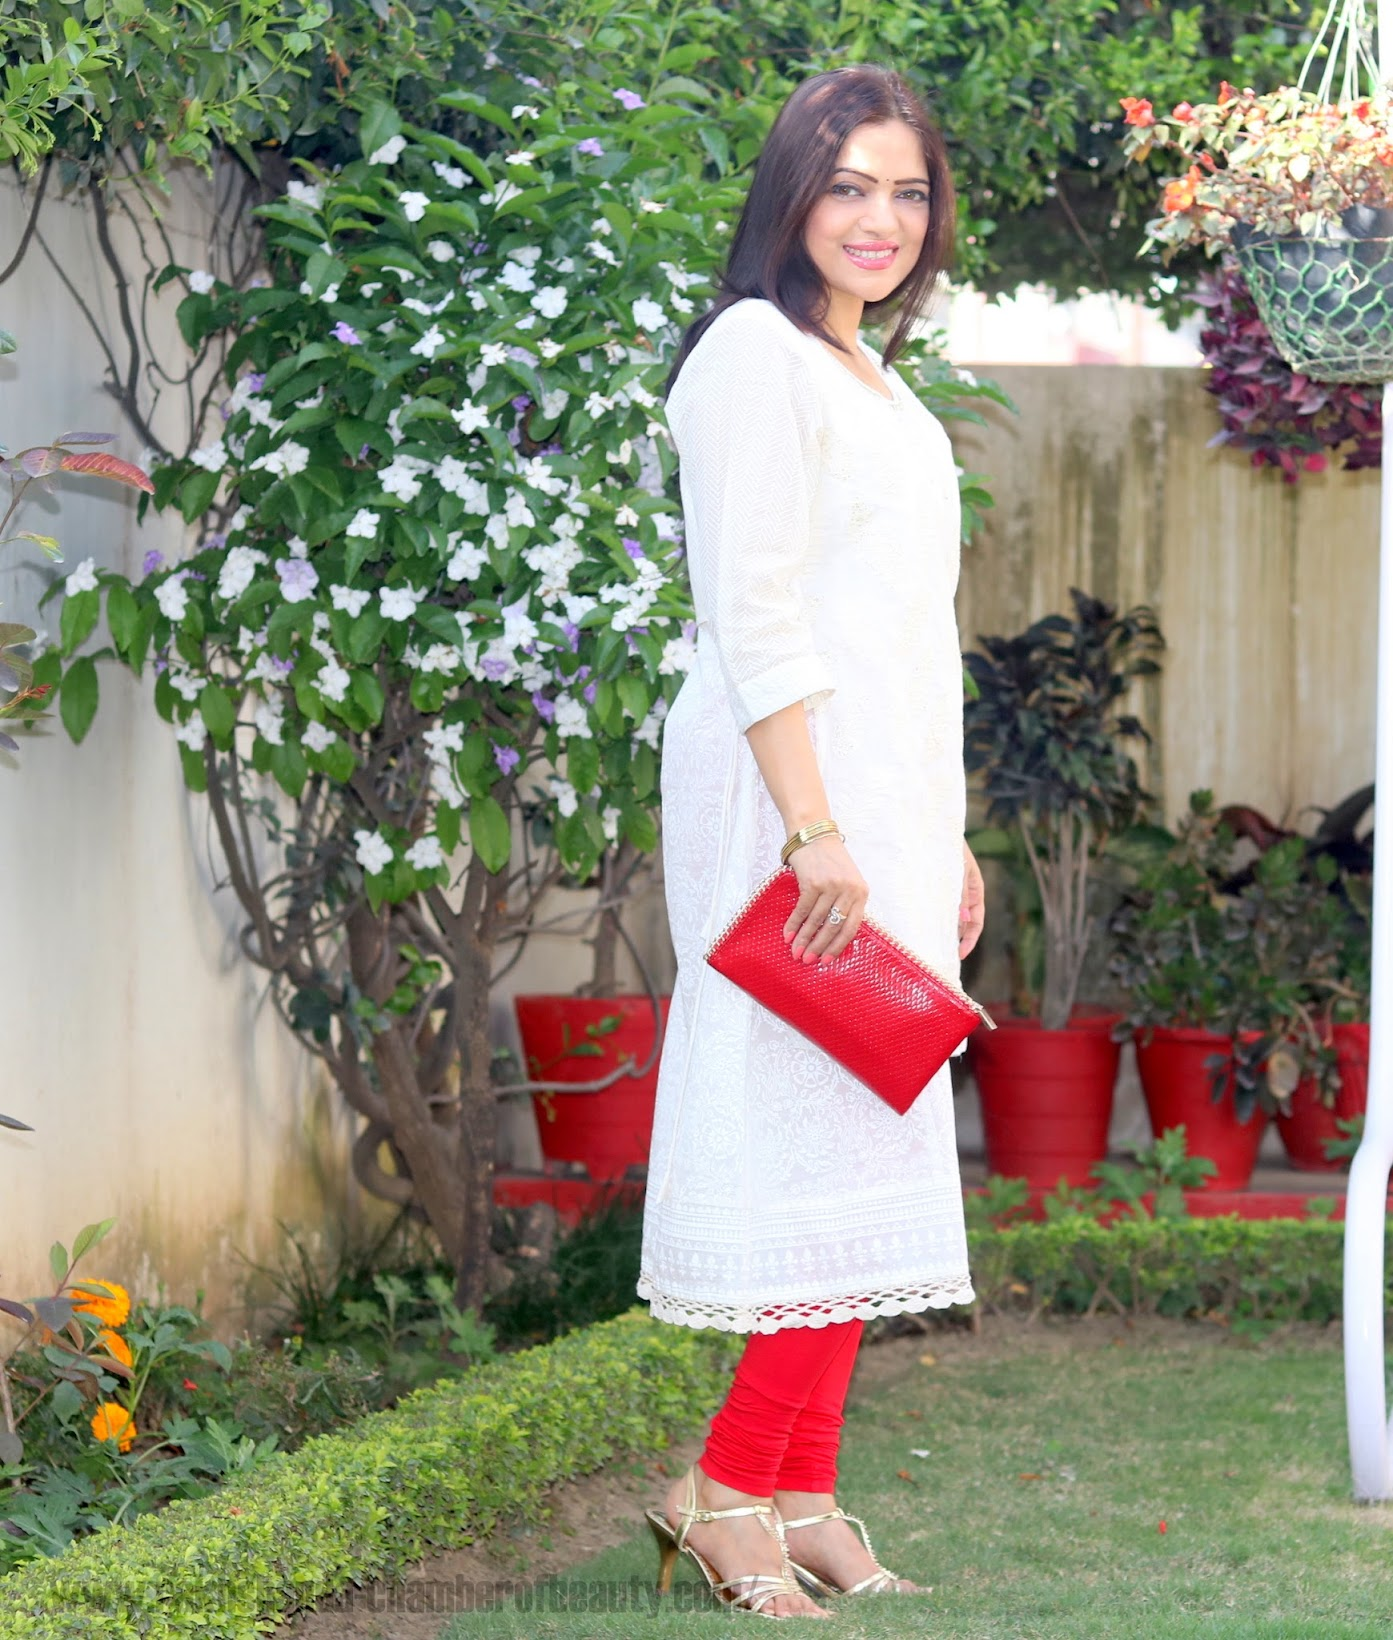 Spring/summer outfit ideas, Ethnic outfit for spring/summer, Max fashion kurti, Indian fashion blogger